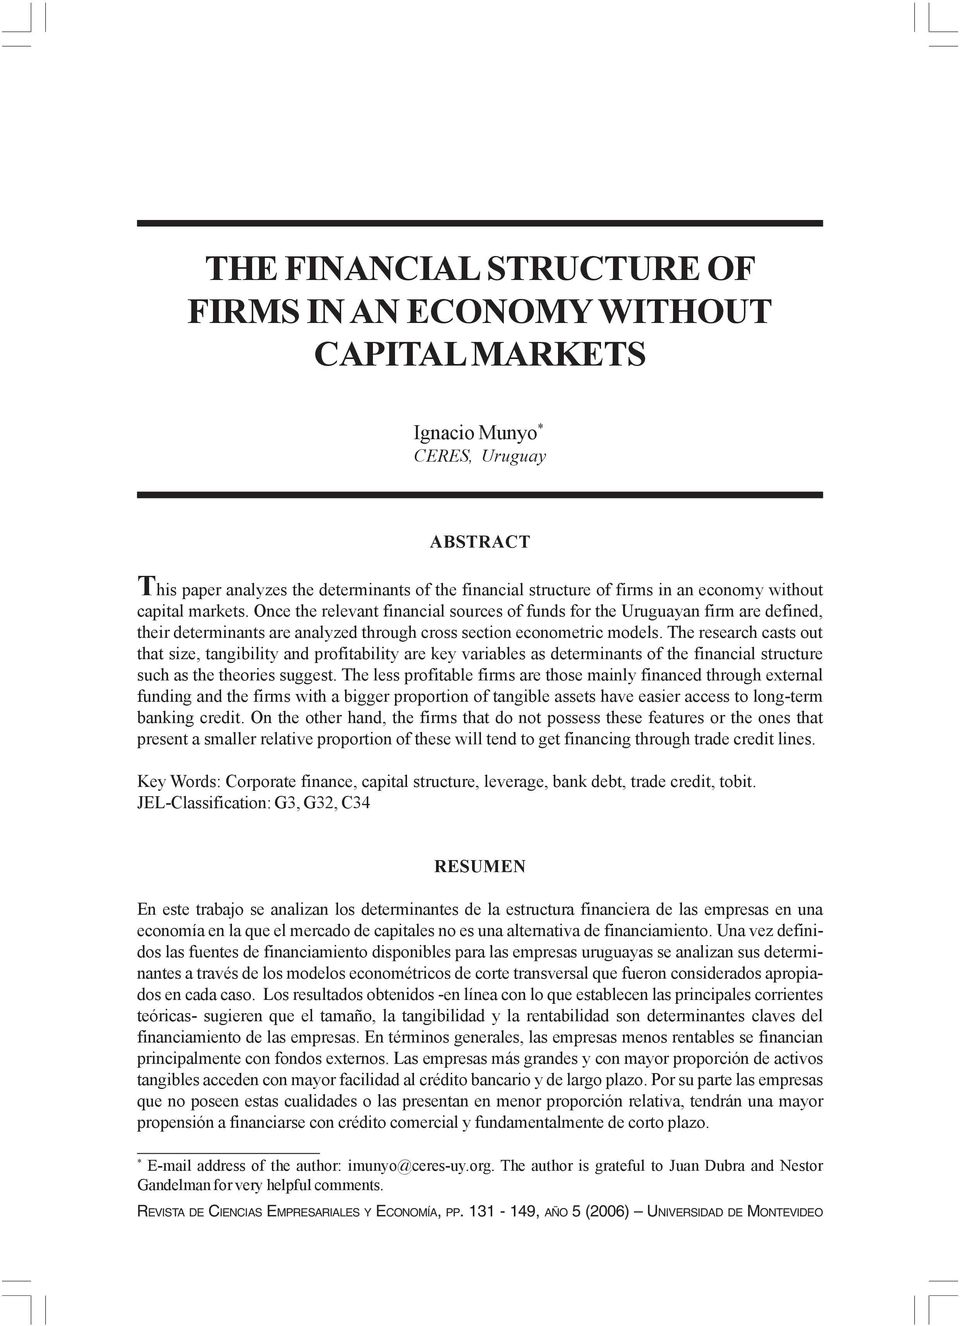 The research casts out that size, tangibility and profitability are key variables as determinants of the financial structure such as the theories suggest.